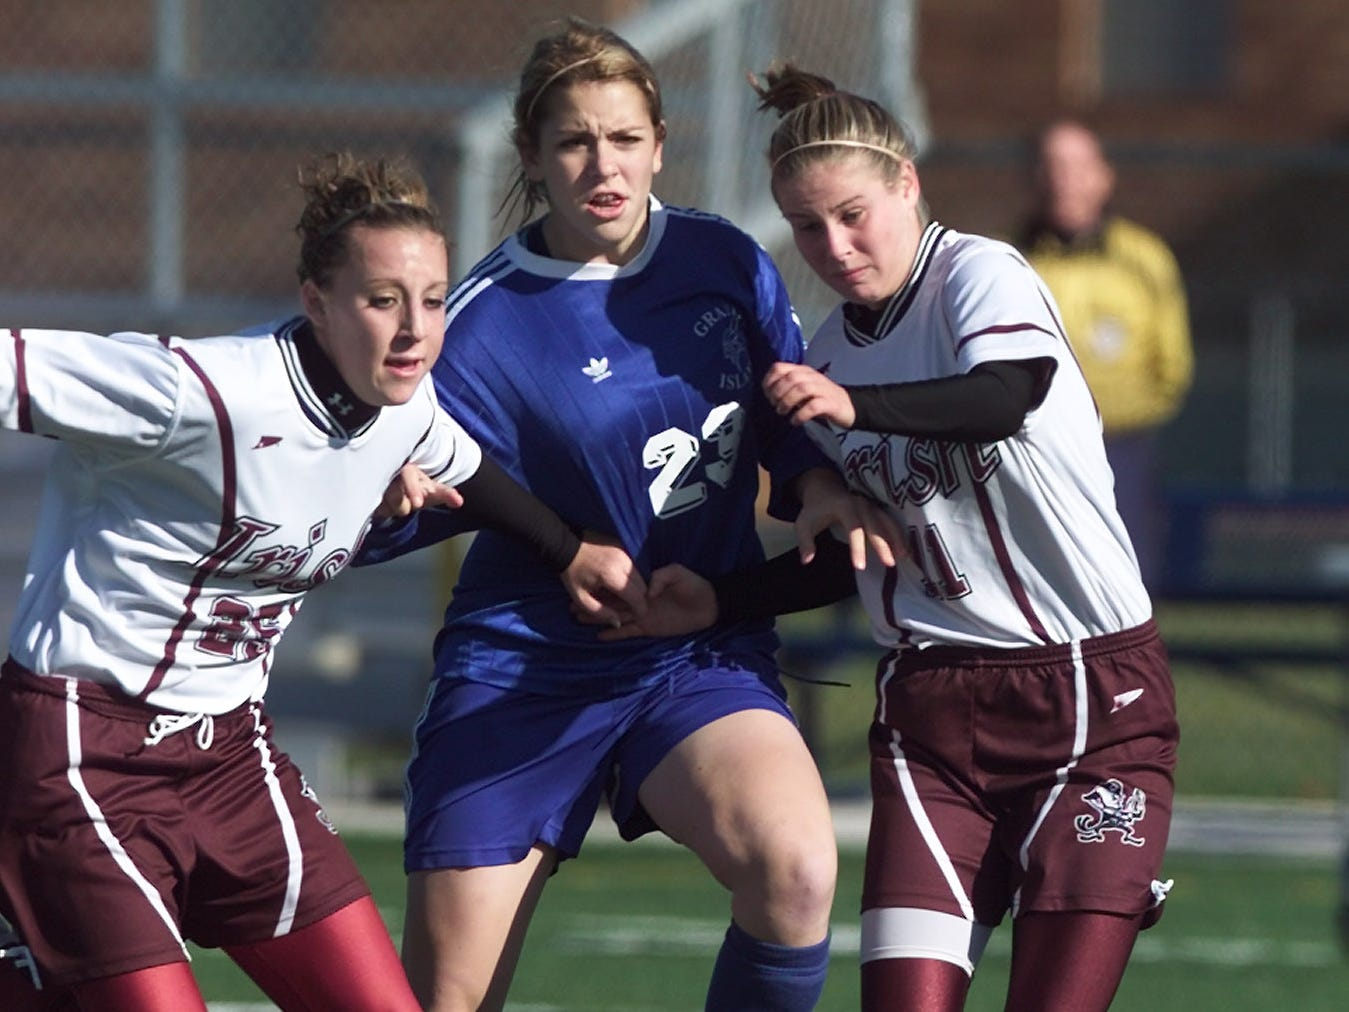 Grand Island's Sarah Sukmanowski is sandwiched between Aquinas' Meaghan Magee, left, and Erica Henderson during a state Class A playoff game on Nov. 12, 2005.